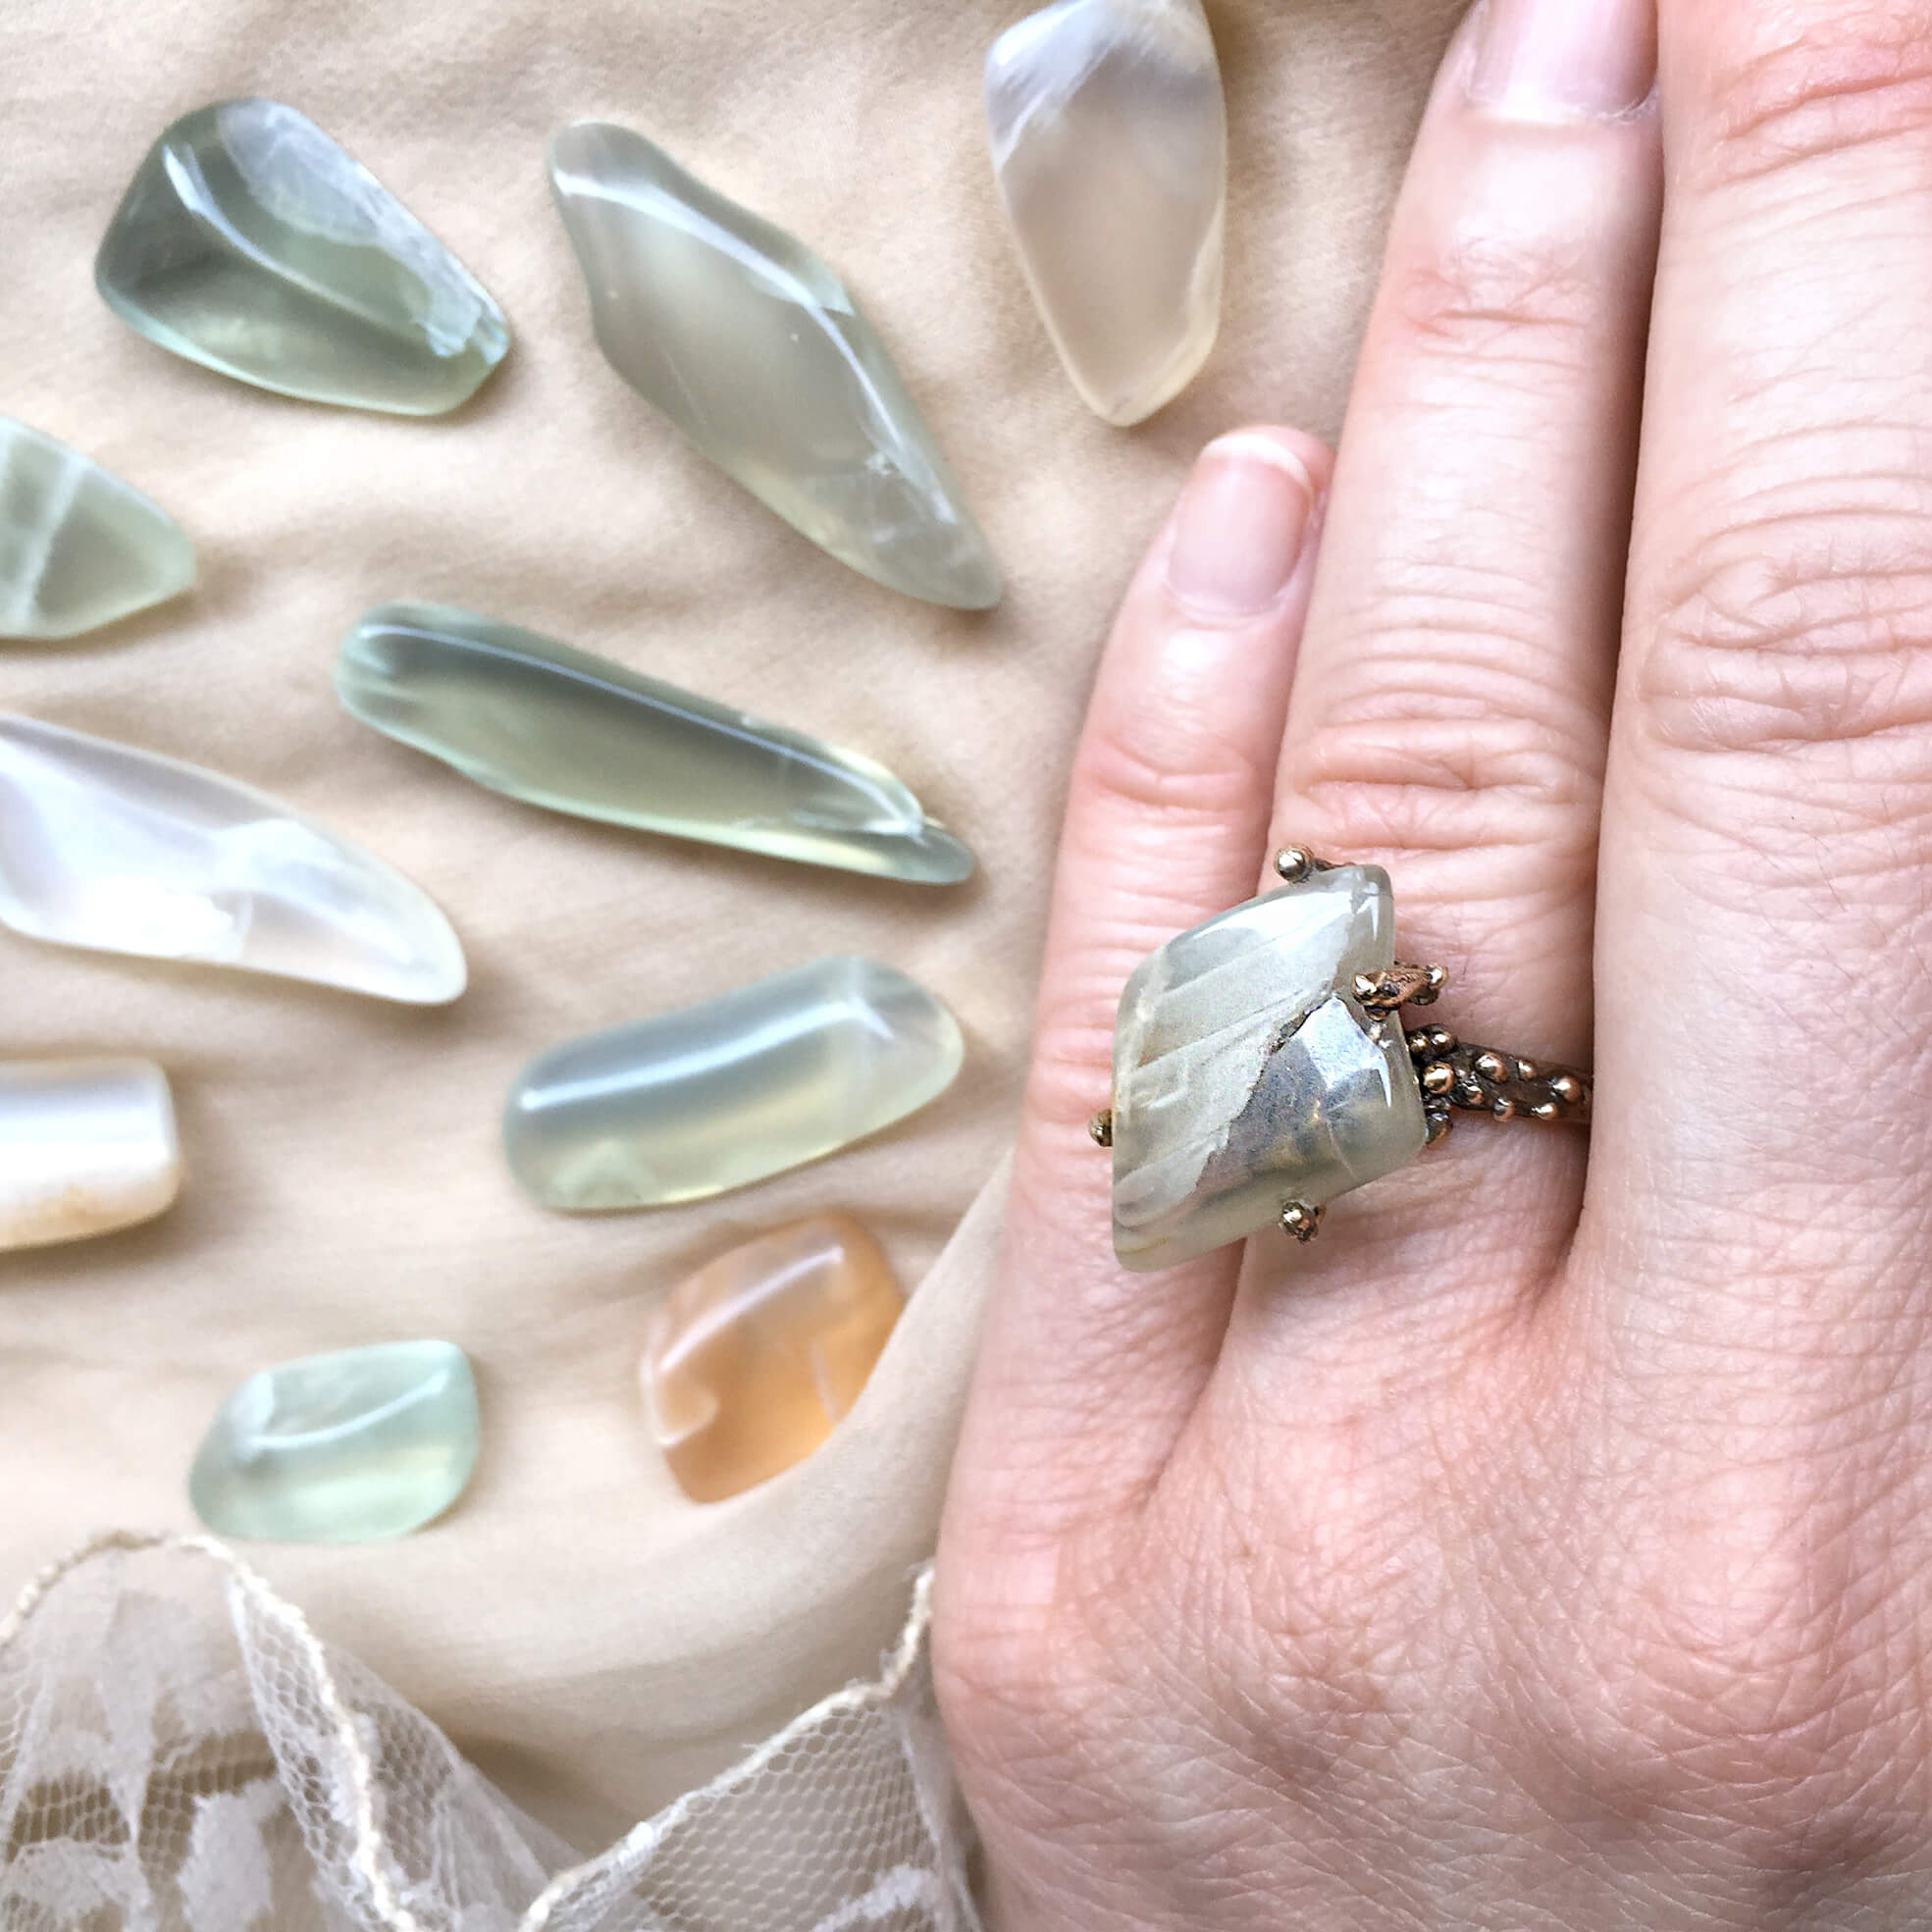 Moonstone healing ring, handmade one of a kind jewelry